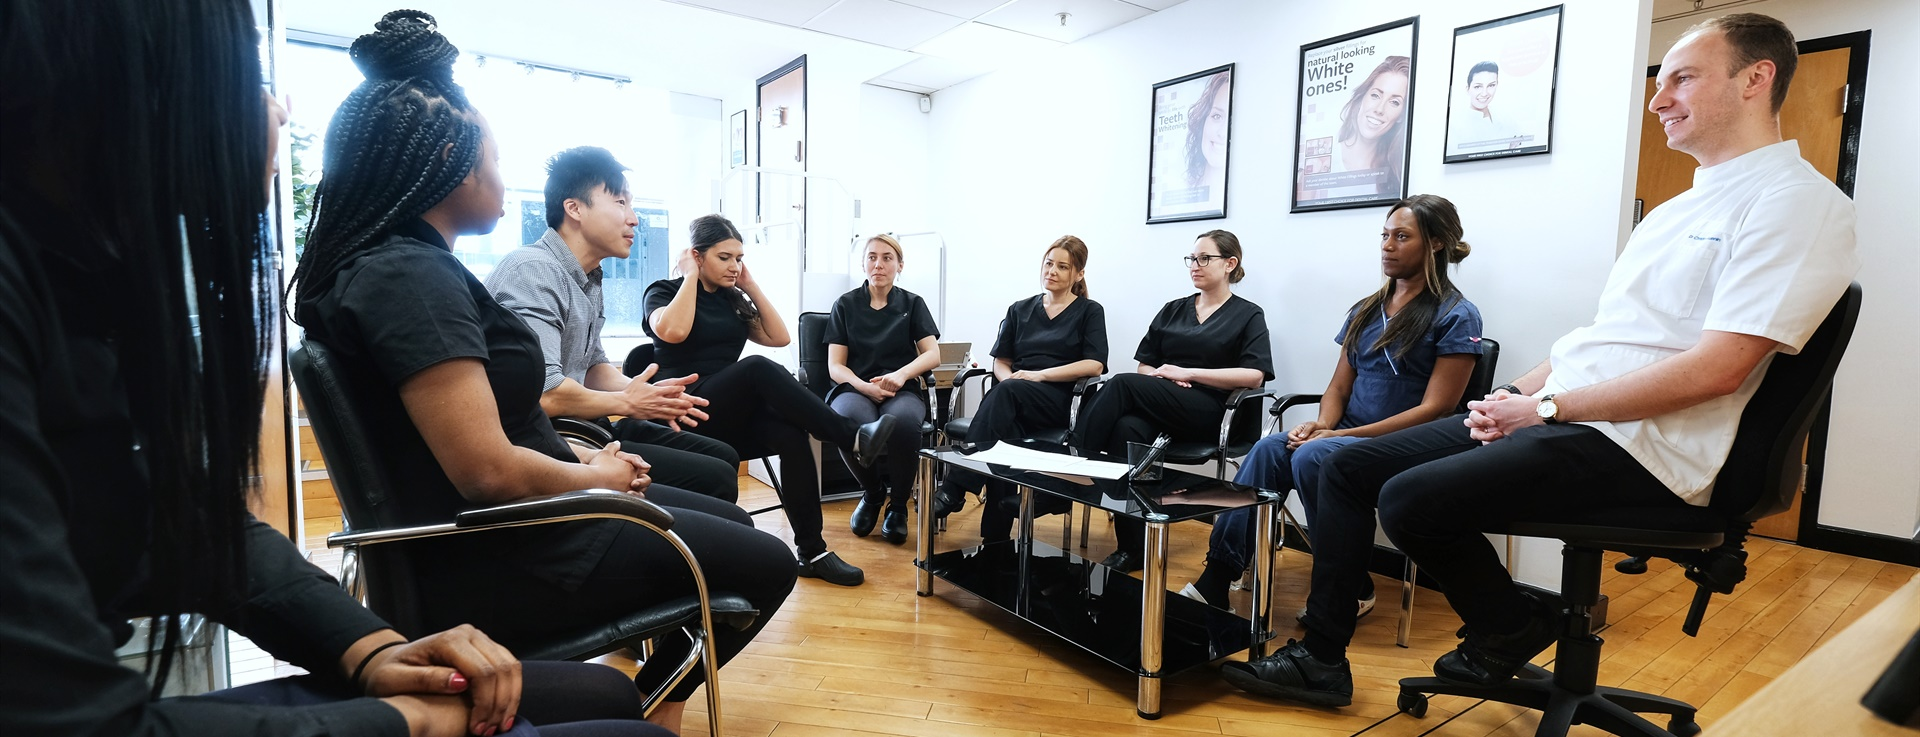 A group of dental professionals sitting in a semi circle mid-discussion.